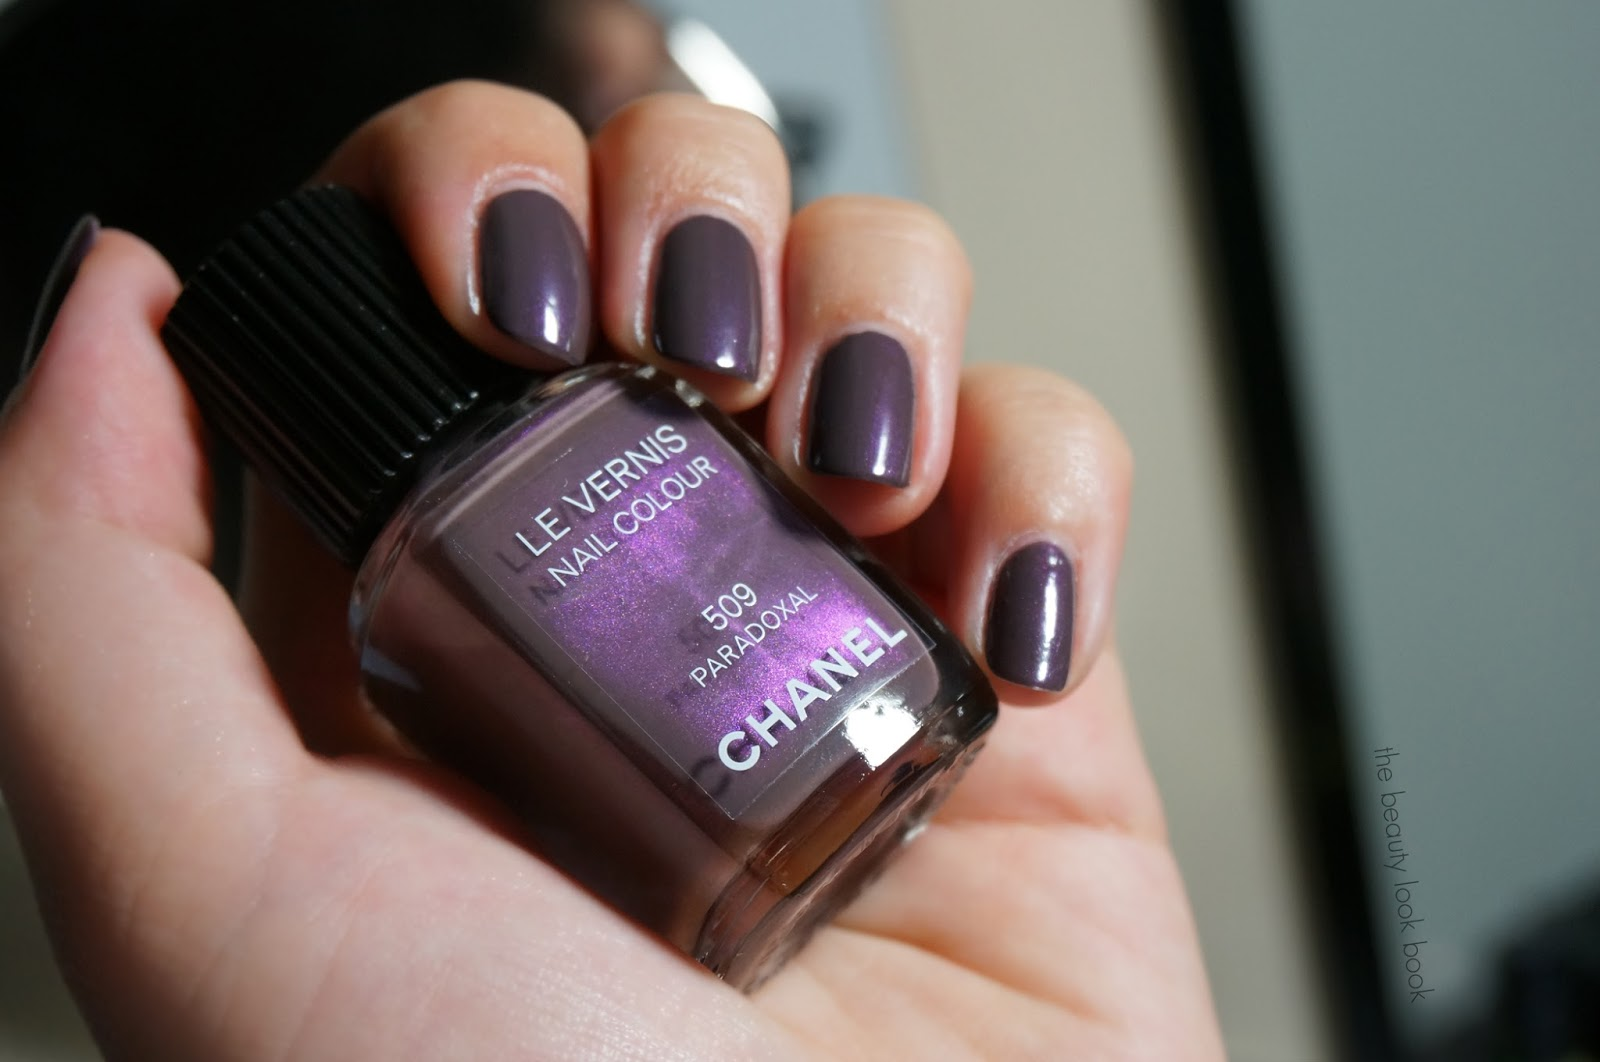 Chanel Paradoxal 509 Le Vernis - Revisited | The Beauty Look Book